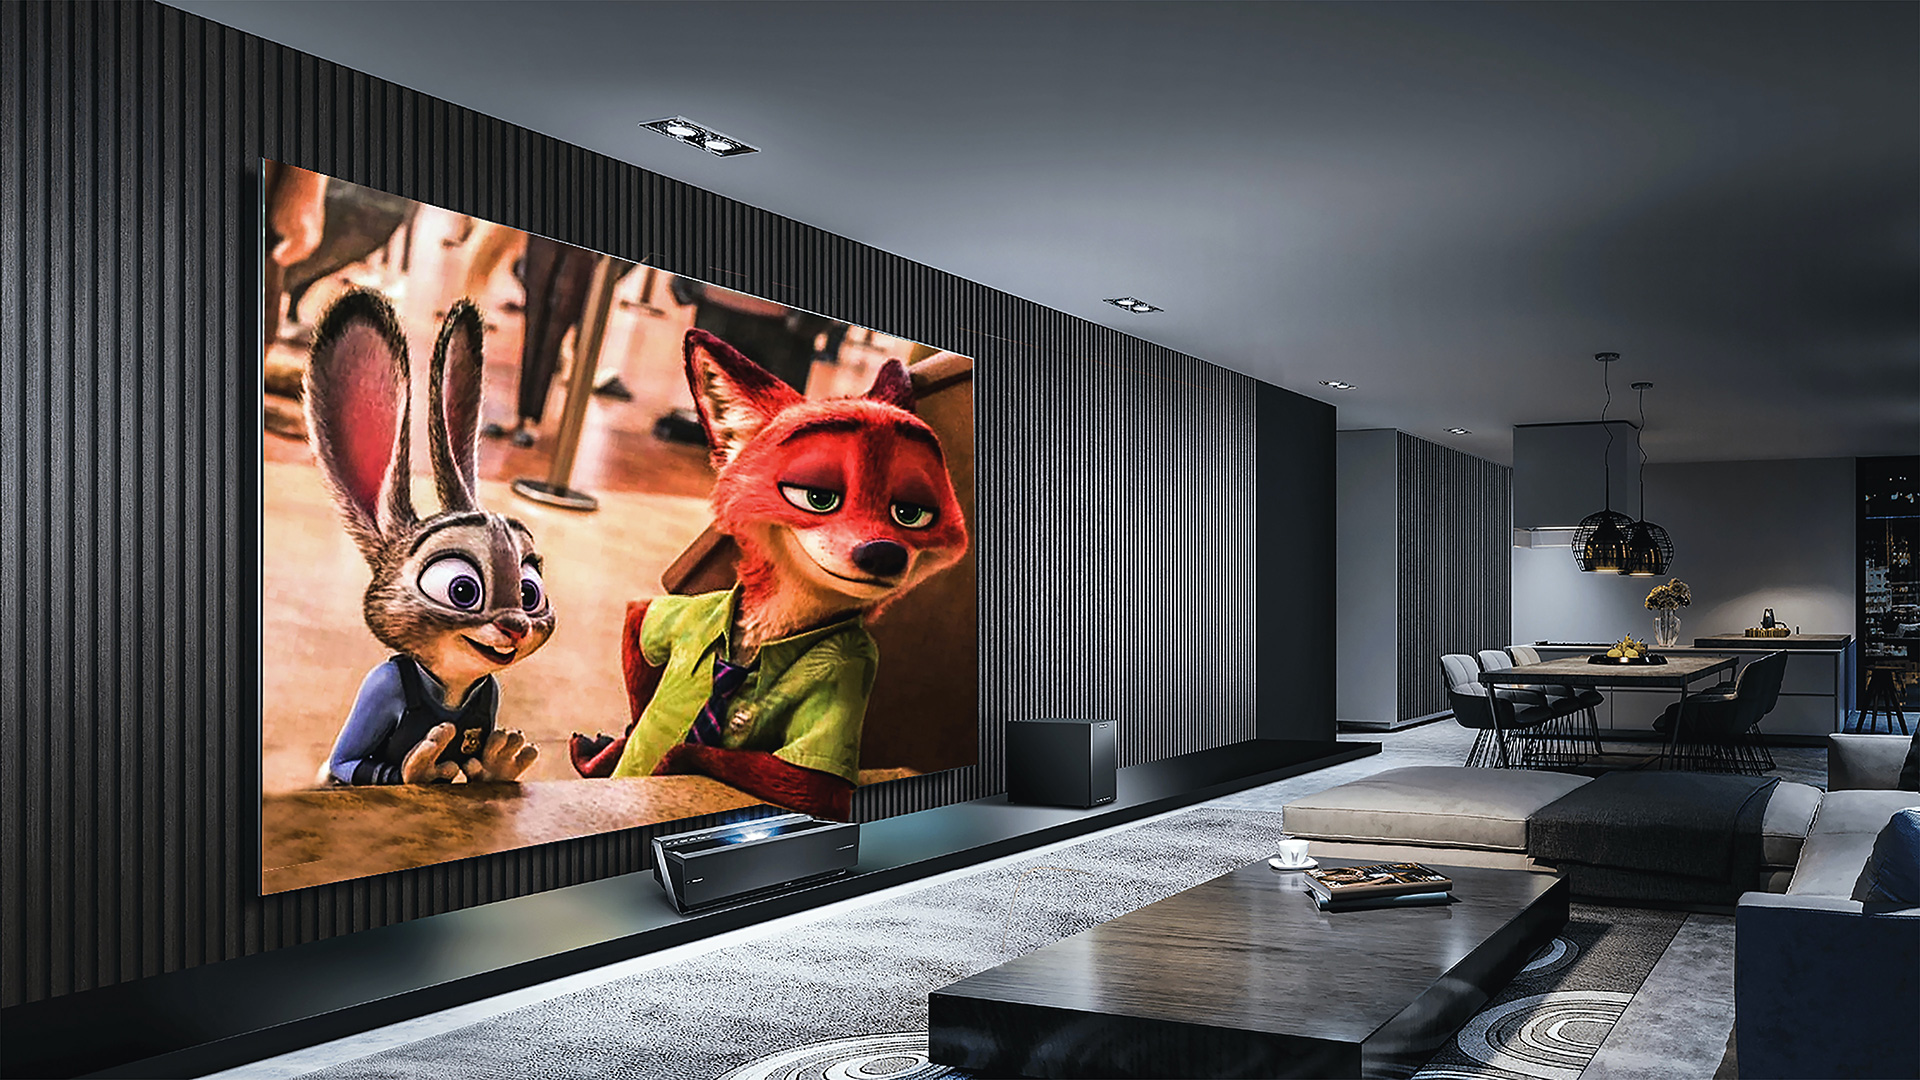 How much does a home theater cost in Los Angeles